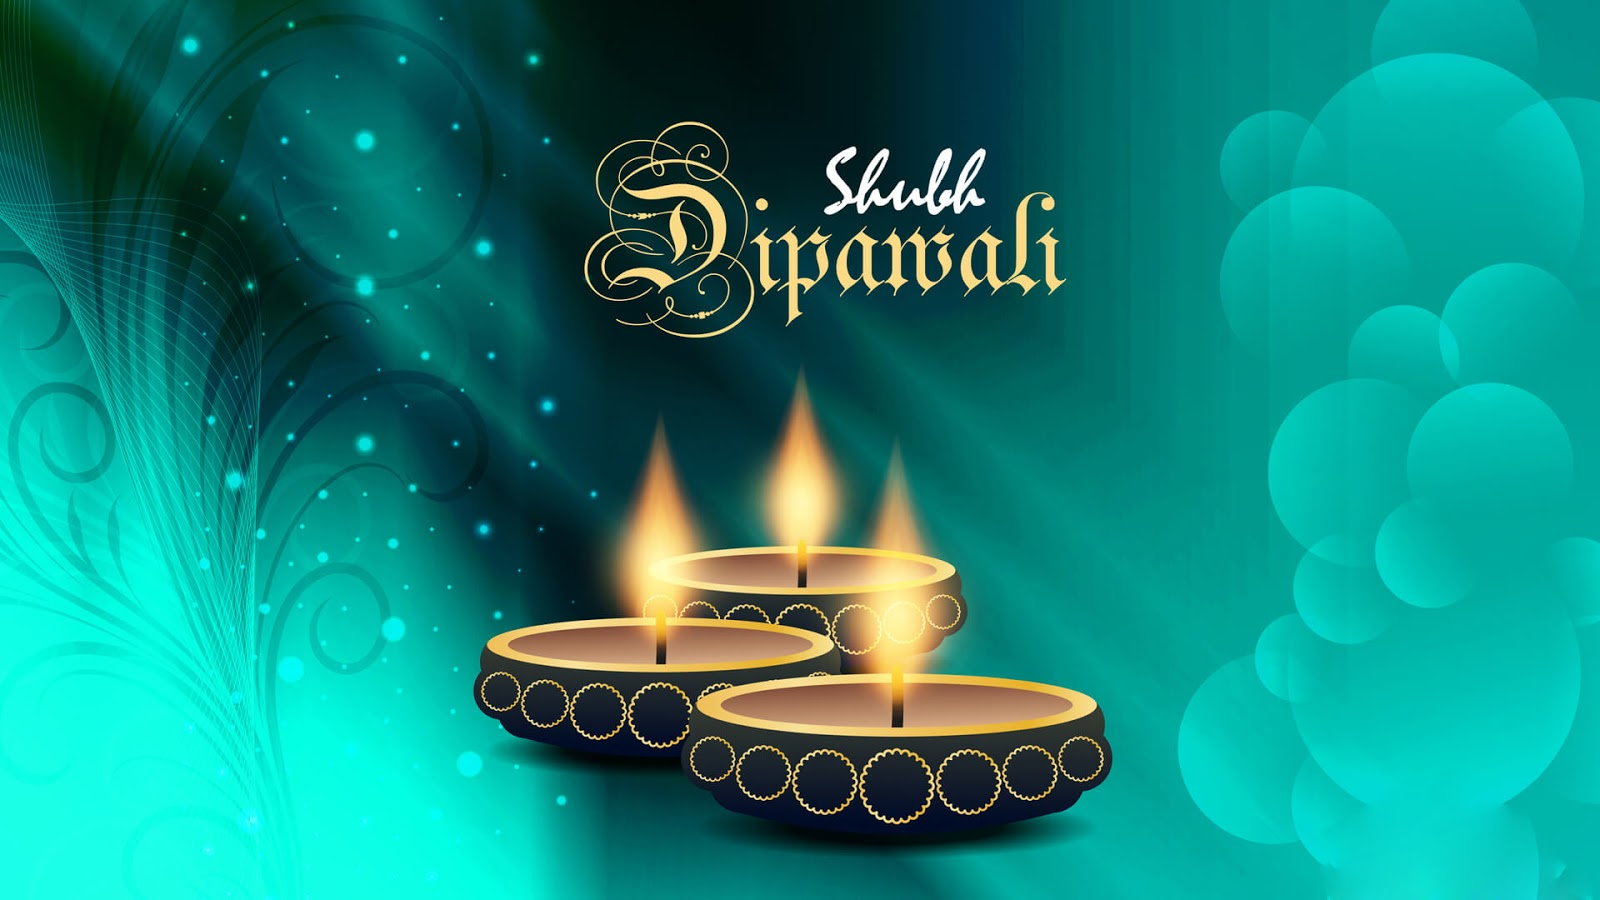 Happy Diwali 2018 Wallpaper Full Size